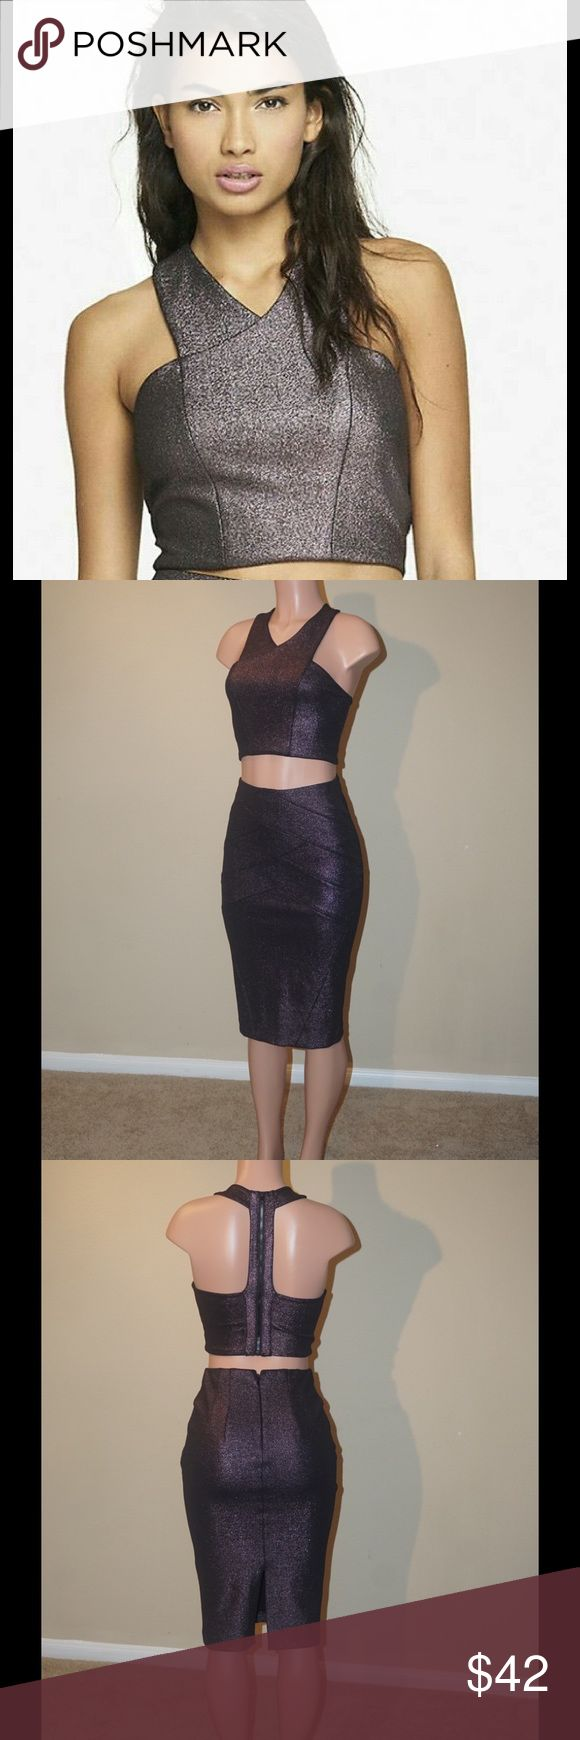 Purple Crop Top Cute and comfortable metallic crop top, perfect to pair with the matching high waist skirt [sold separately] or black pants. Worn once. Polyester/Spandex - Hand Wash Clean. All items professionally cleaned.* Express Tops Crop Tops